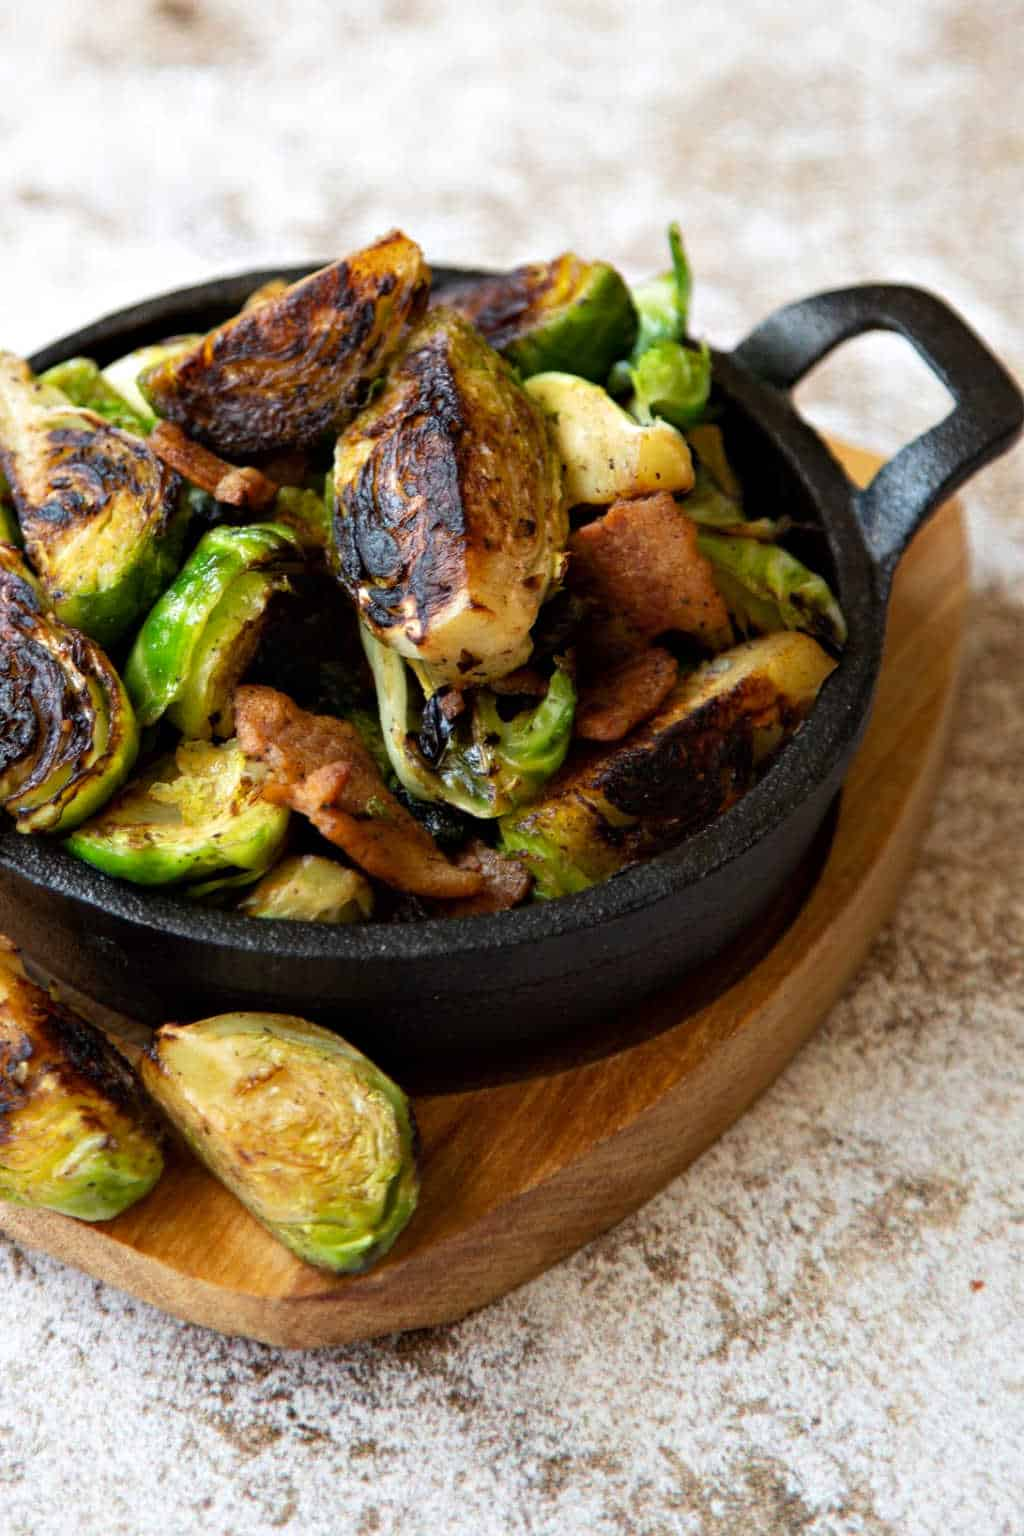 appetizer of charred brussel sprouts